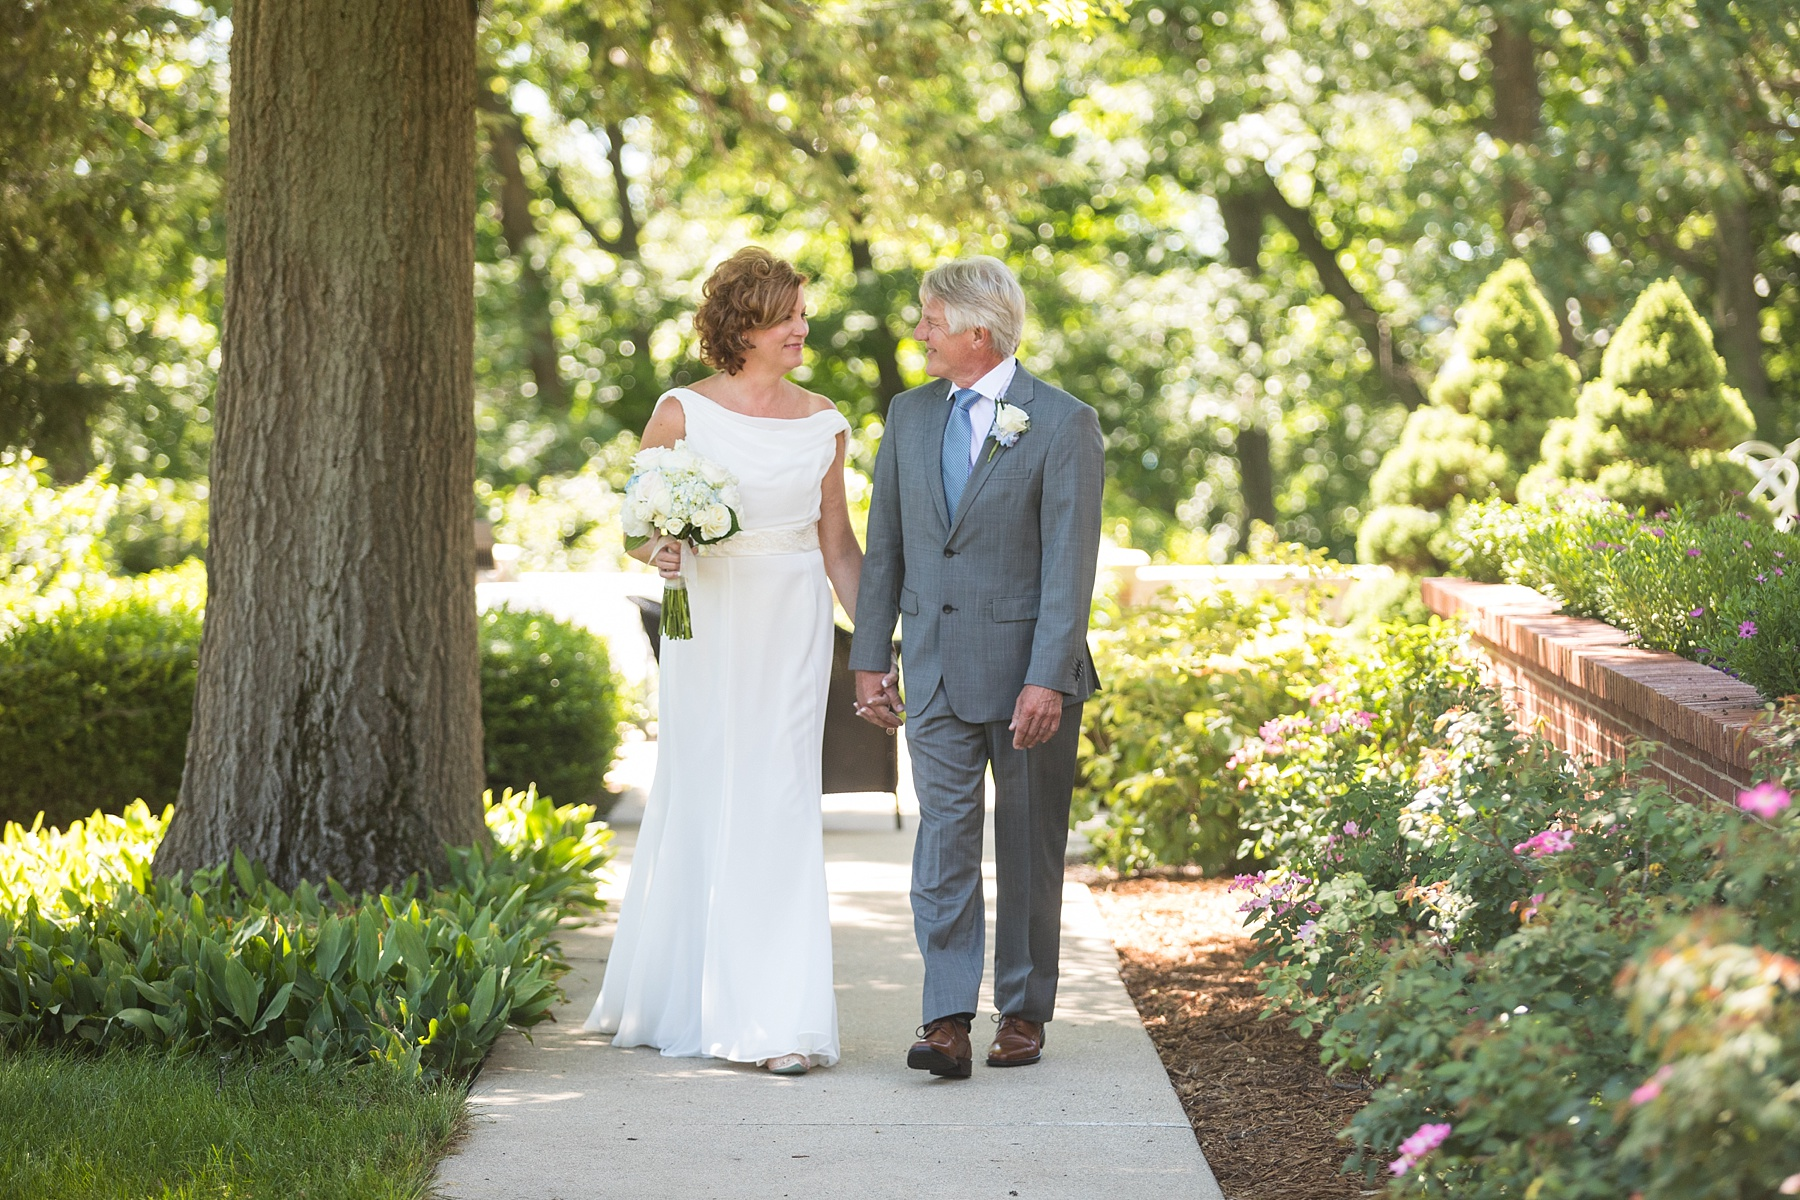 Brandon_Shafer_Photography_Lori_Wes_Gull_Lake_Wedding_0010.jpg